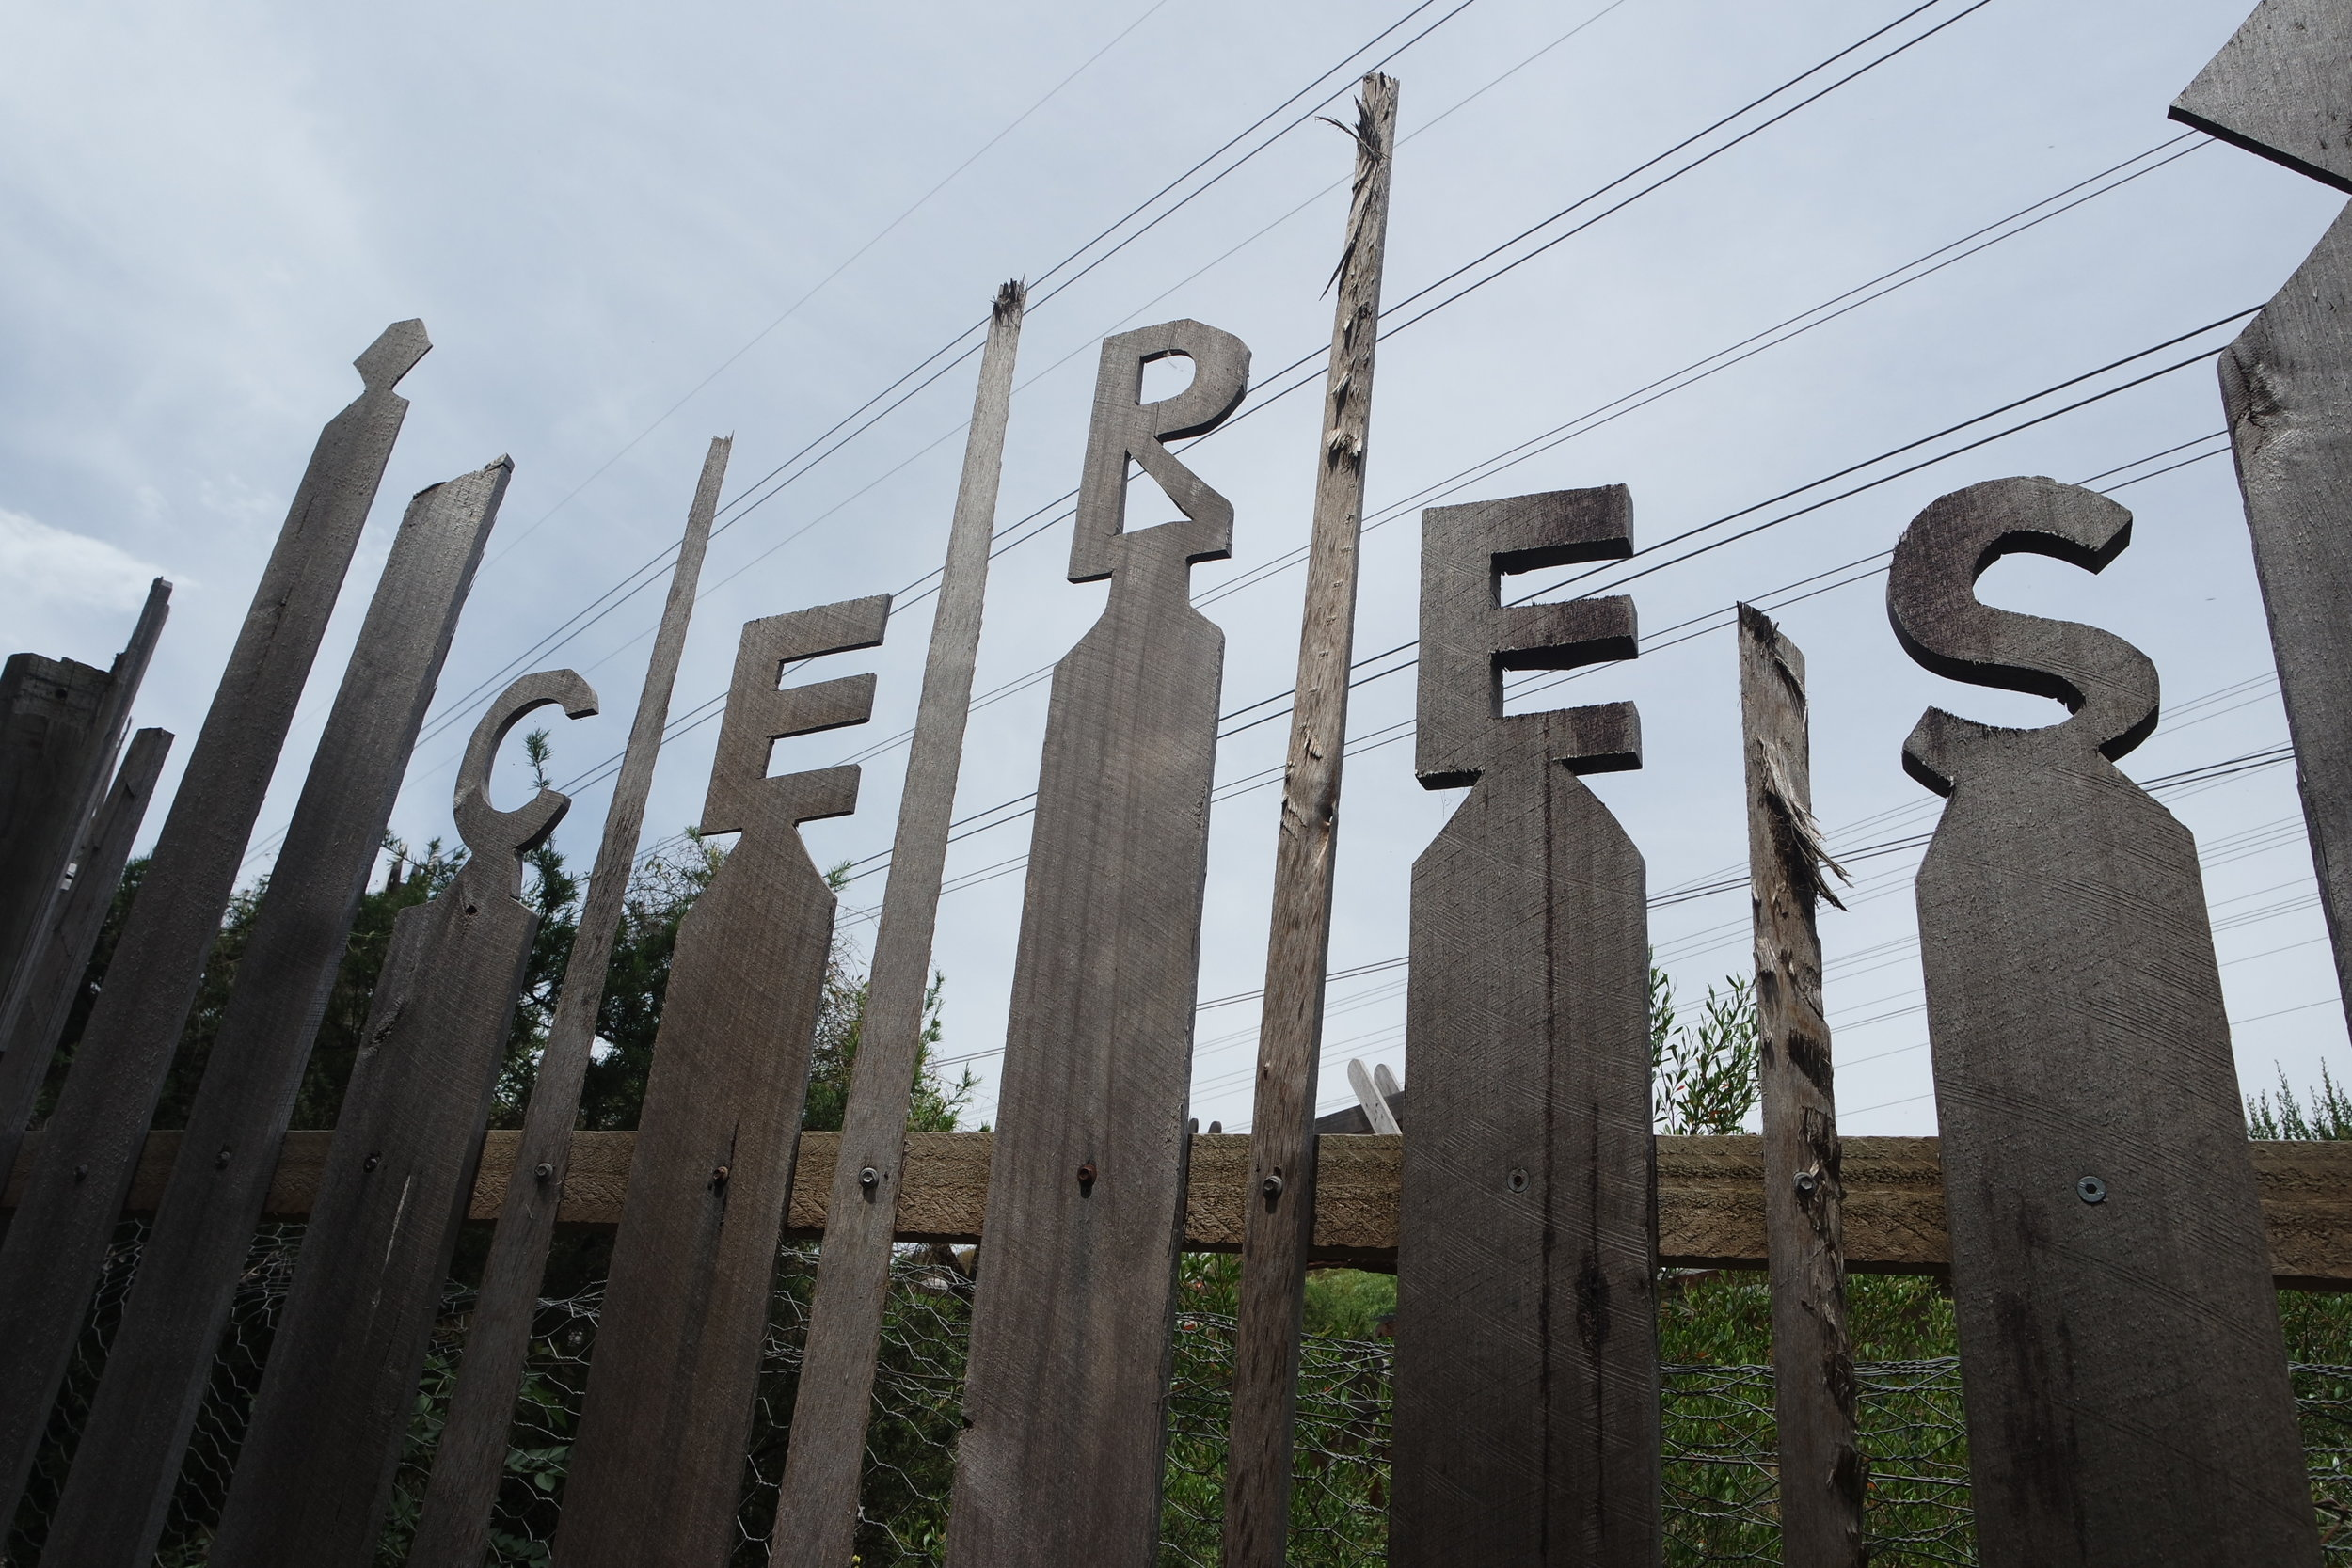 CERES - Centre for Education and Research in Environmental Strategies turned wasteland into habitat.